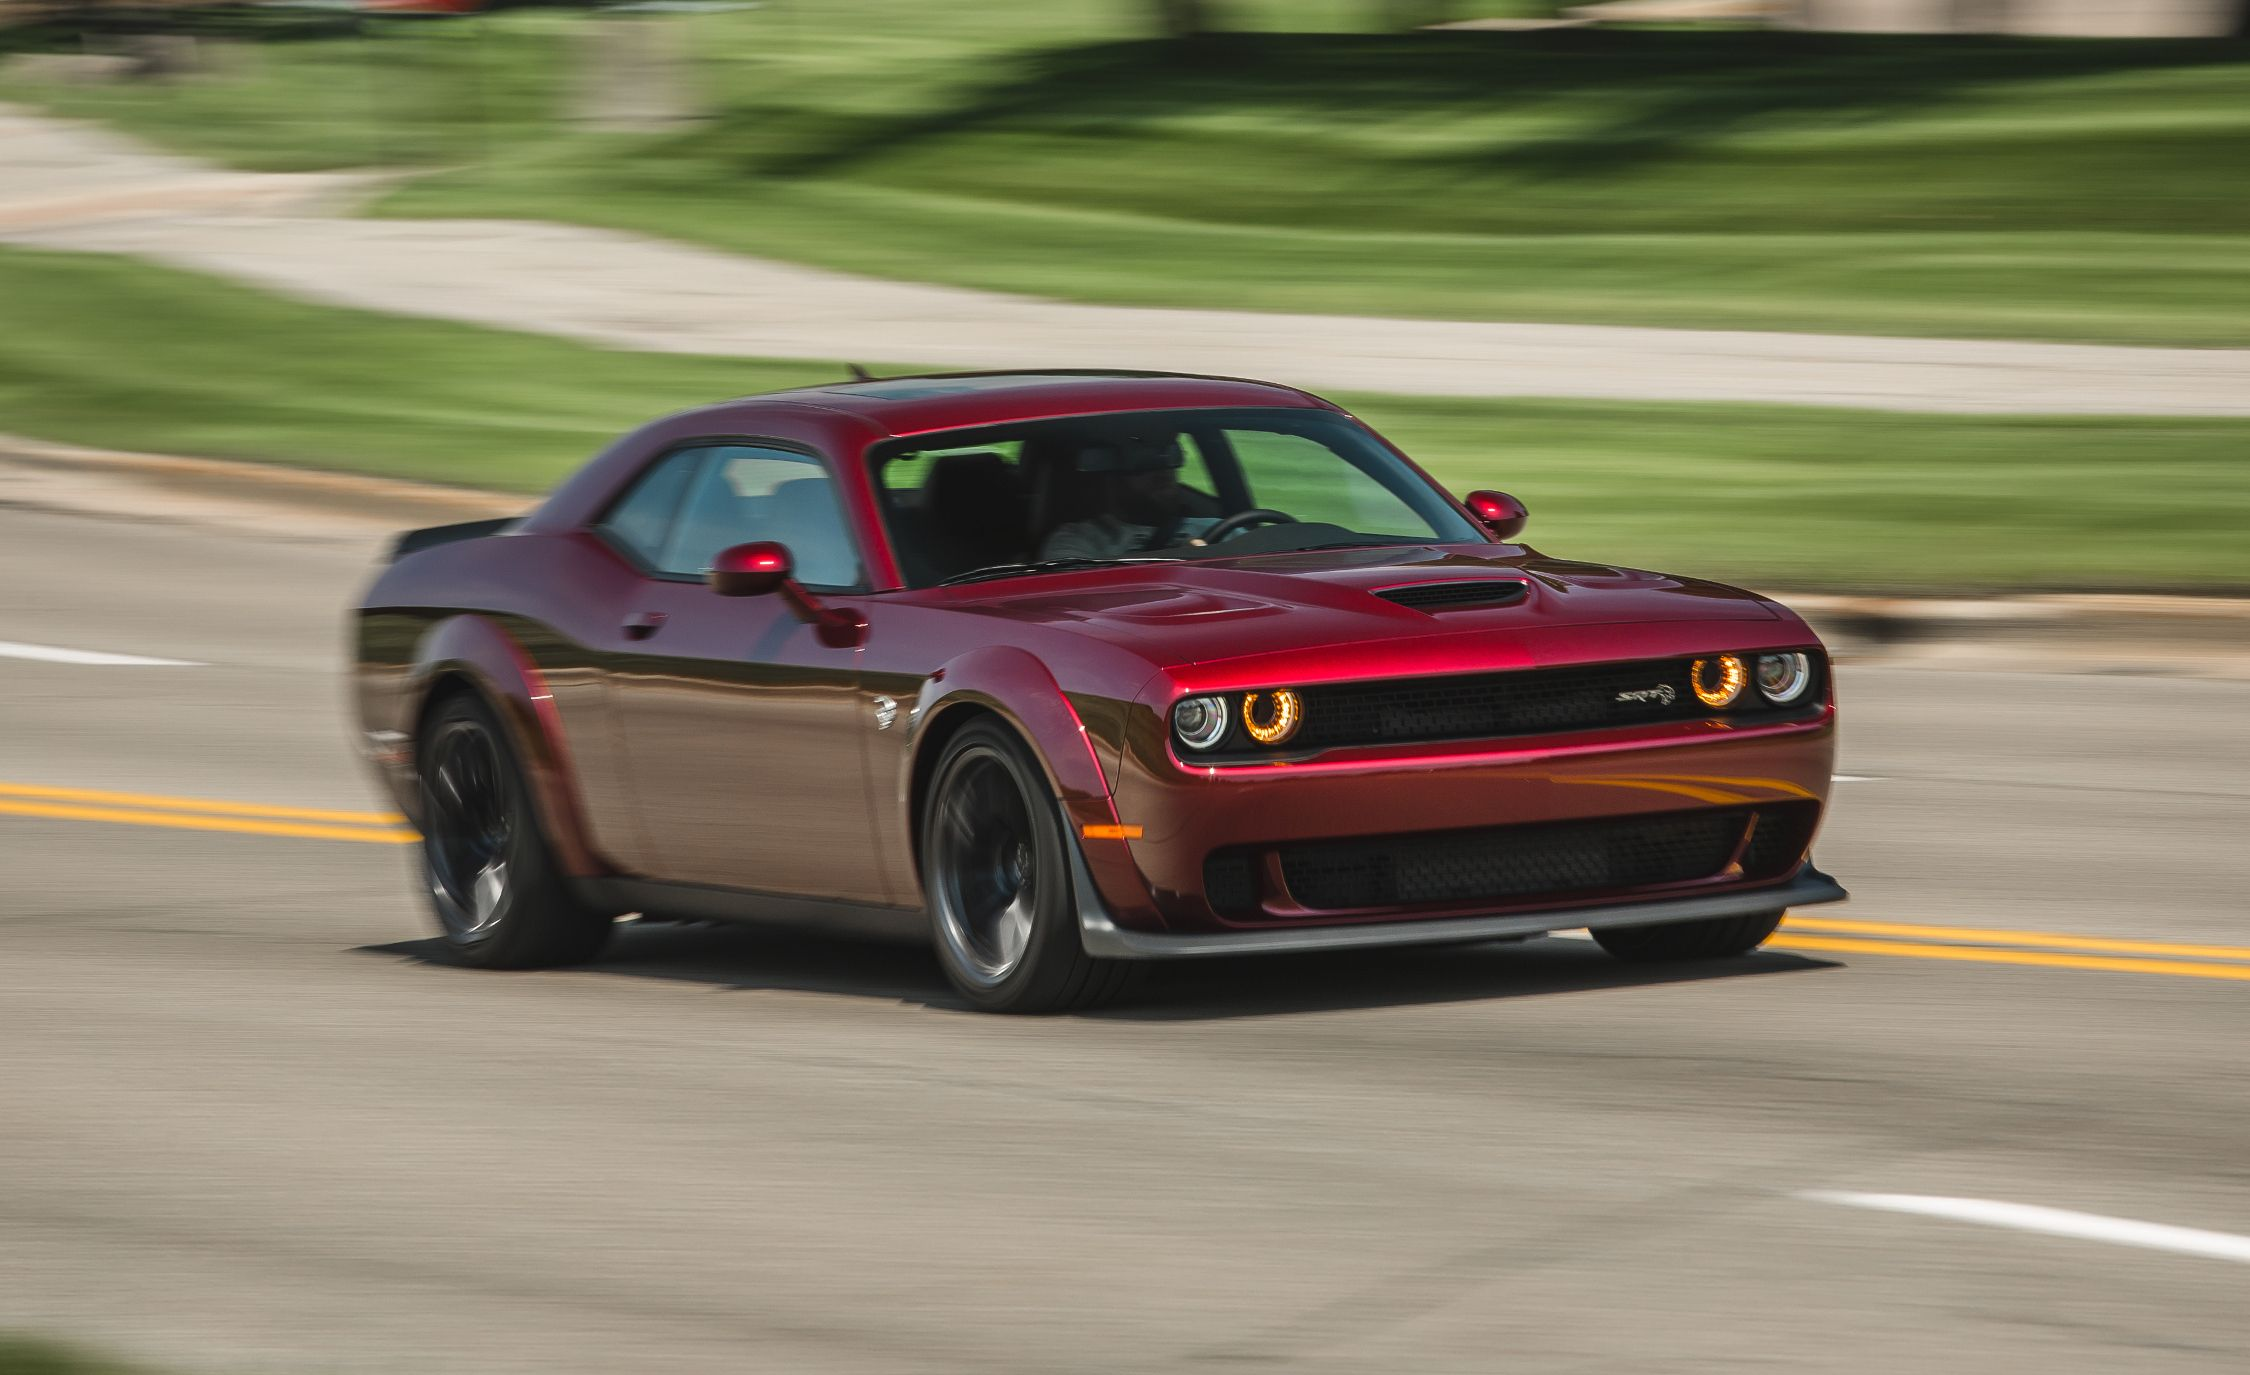 2018 Dodge Challenger Srt Hellcat Widebody Manual Test Hell With A Stick Review Car And Driver